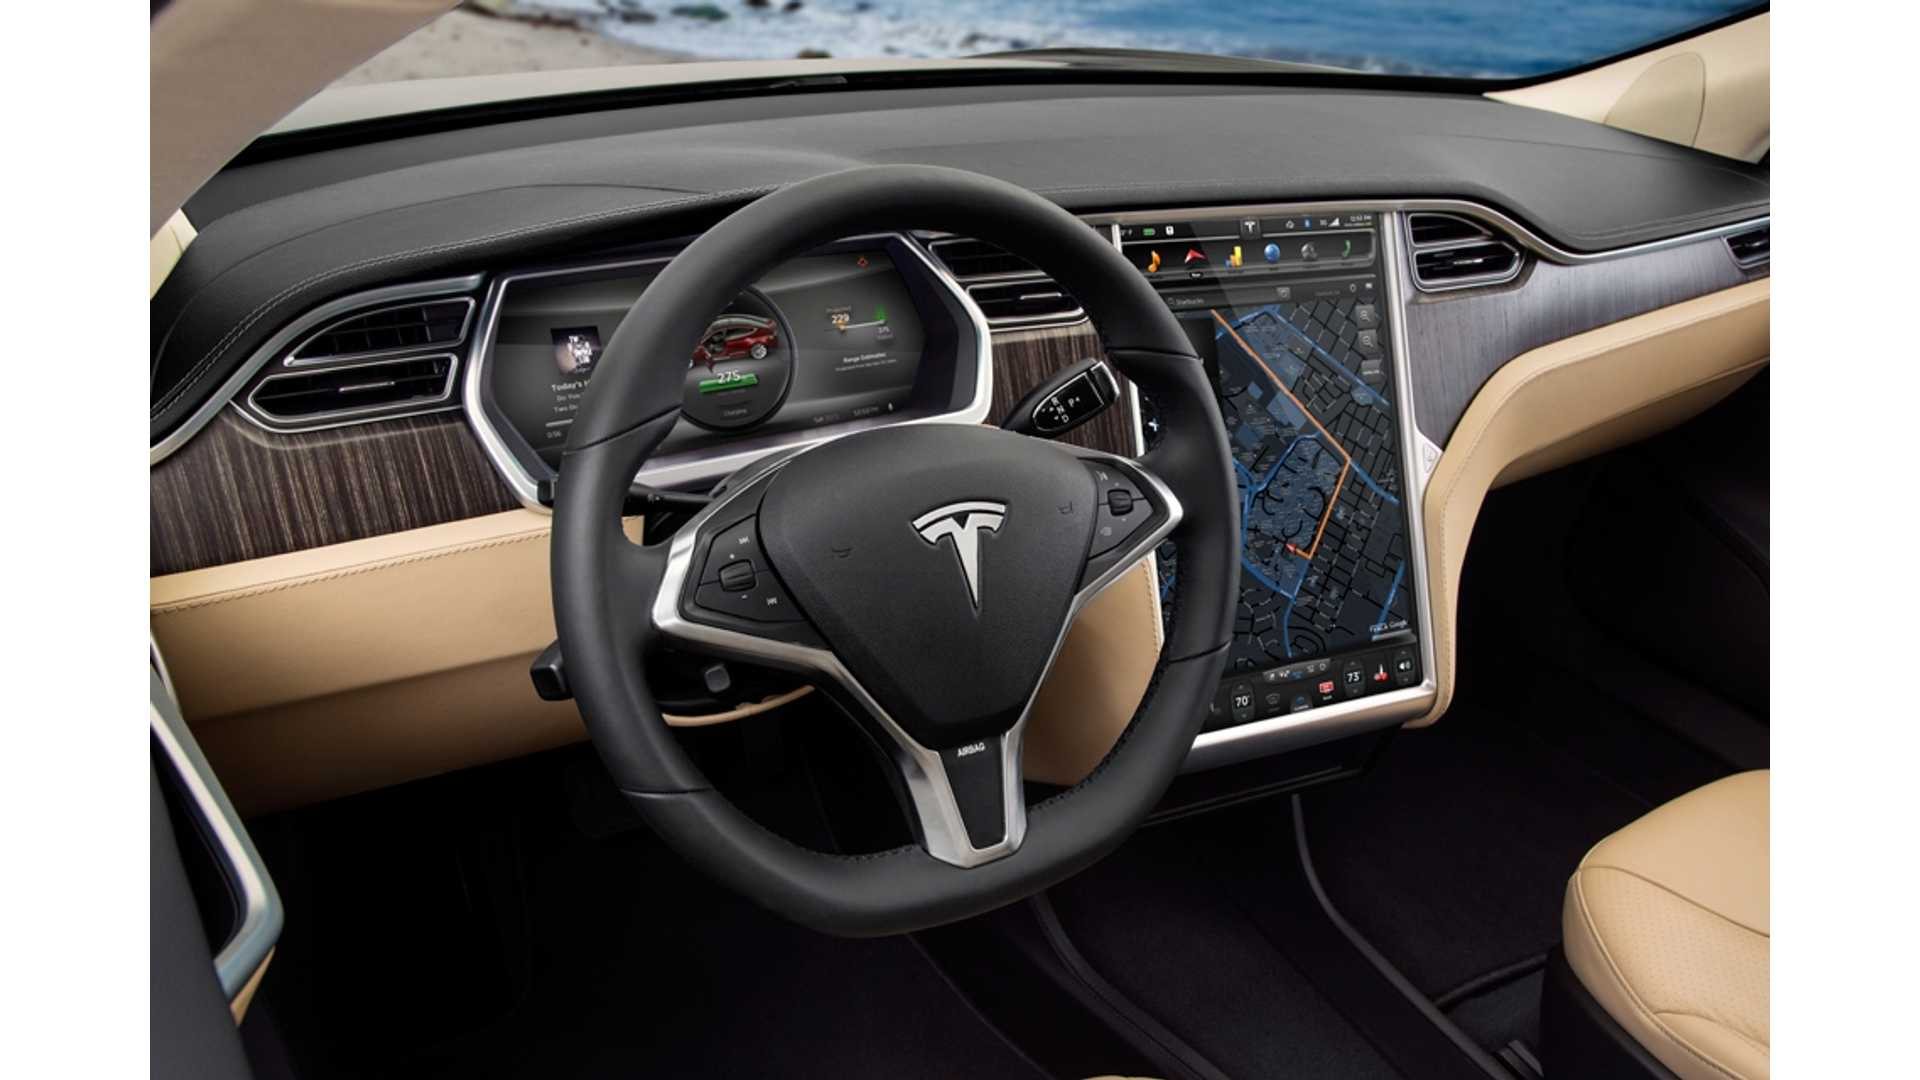 Tesla Model S Interior Flawed Here Are The Fixes